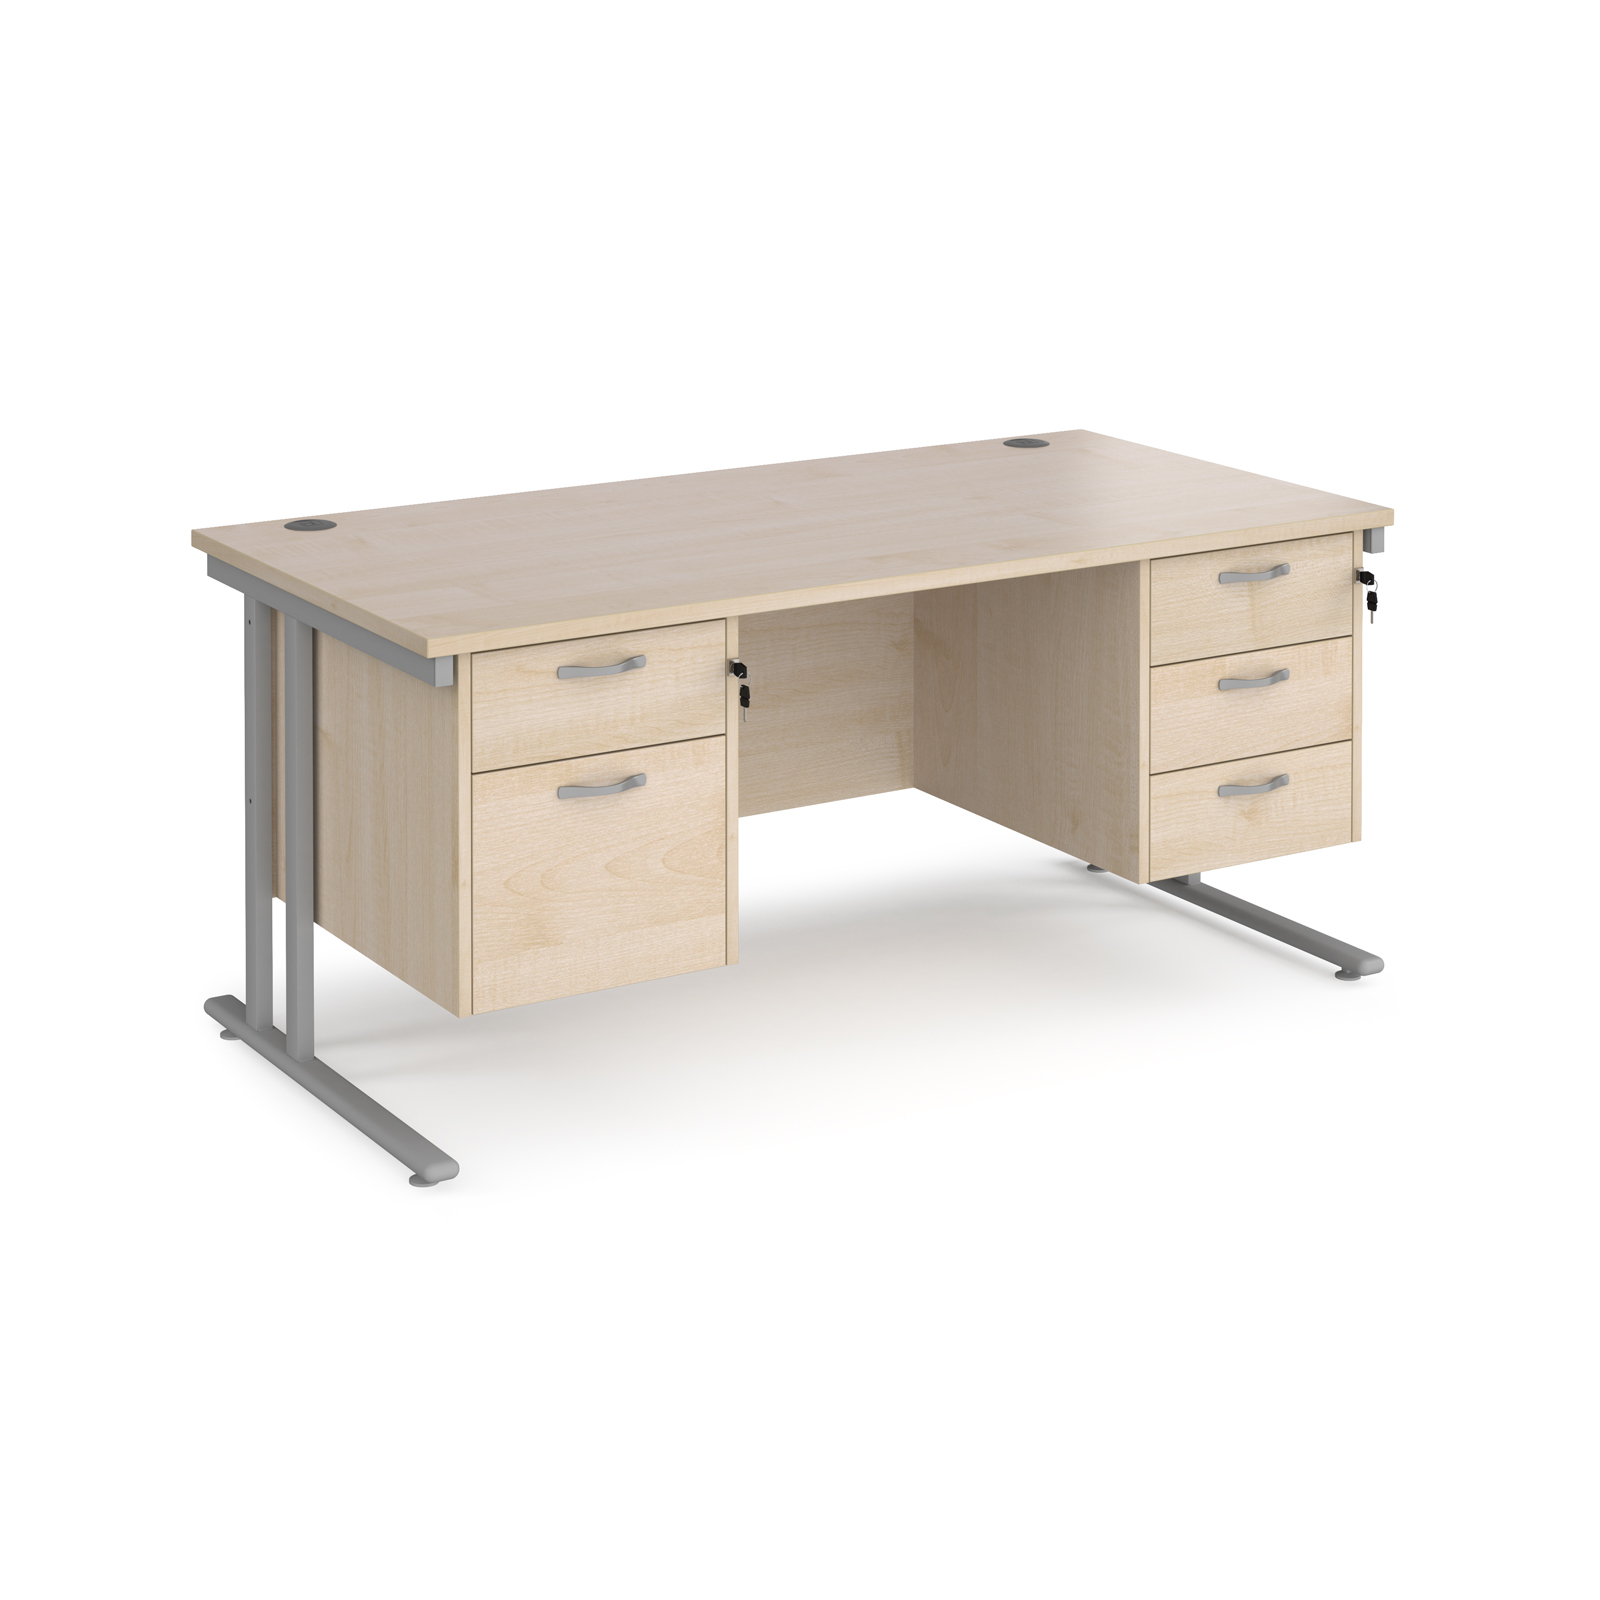 Maestro 25 straight desk 1600mm x 800mm with 2 and 3 drawer pedestals - silver cantilever leg frame, maple top